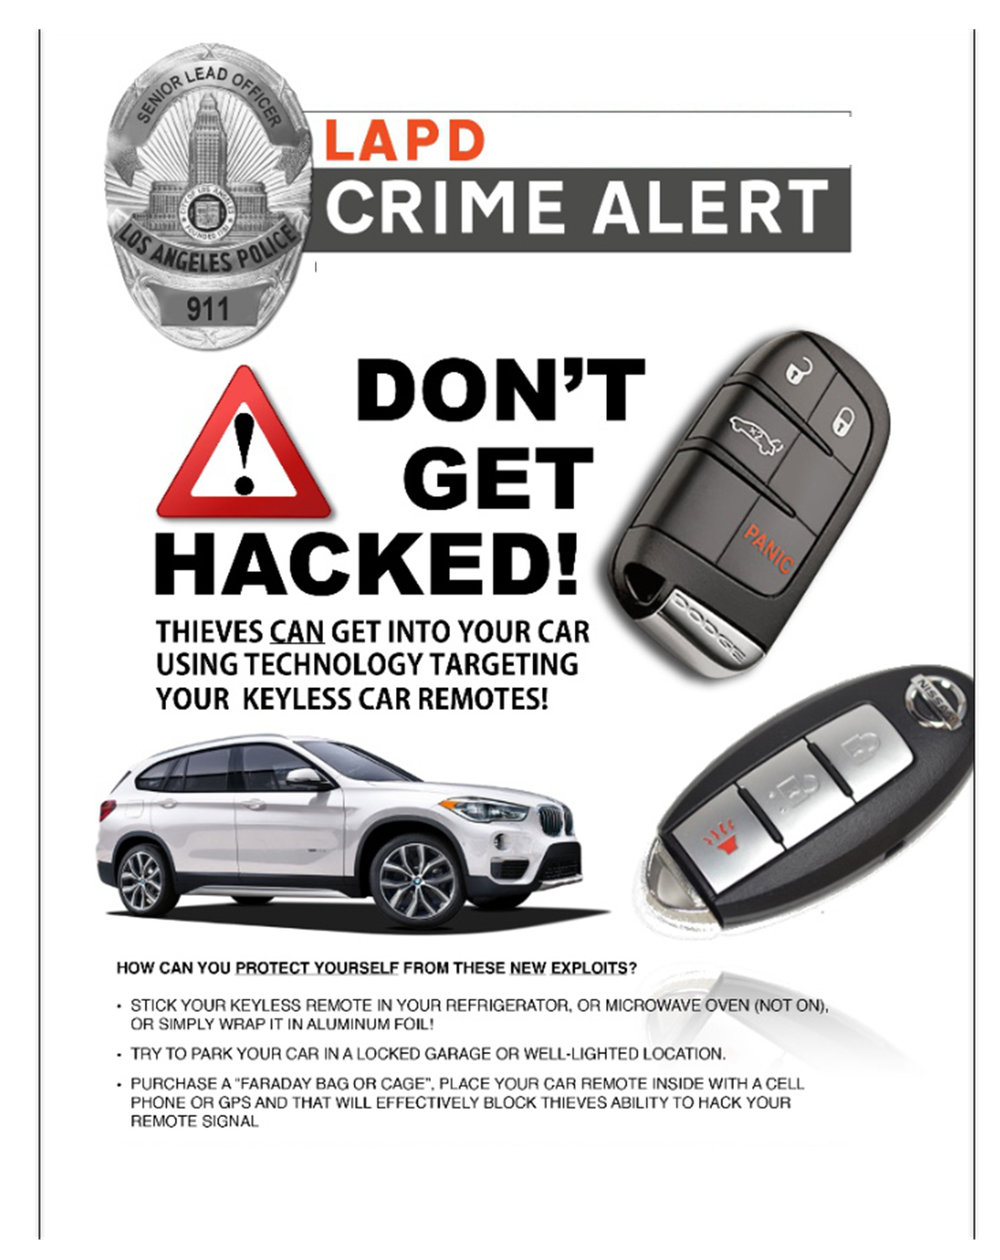 LAPD - car remote hacking advice.jpg